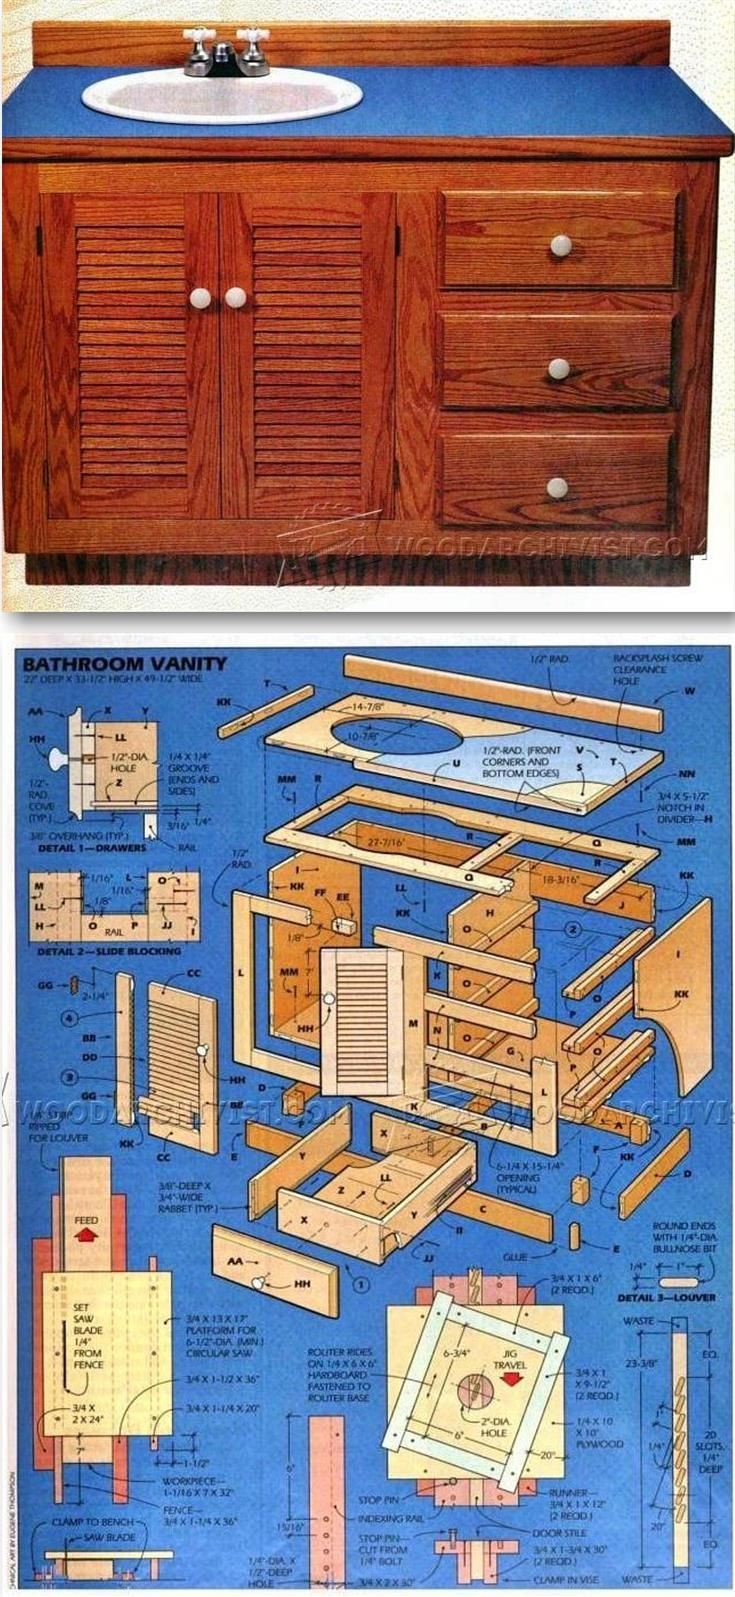 1000 ideas about woodworking plans on pinterest - Bathroom vanity plans woodworking ...